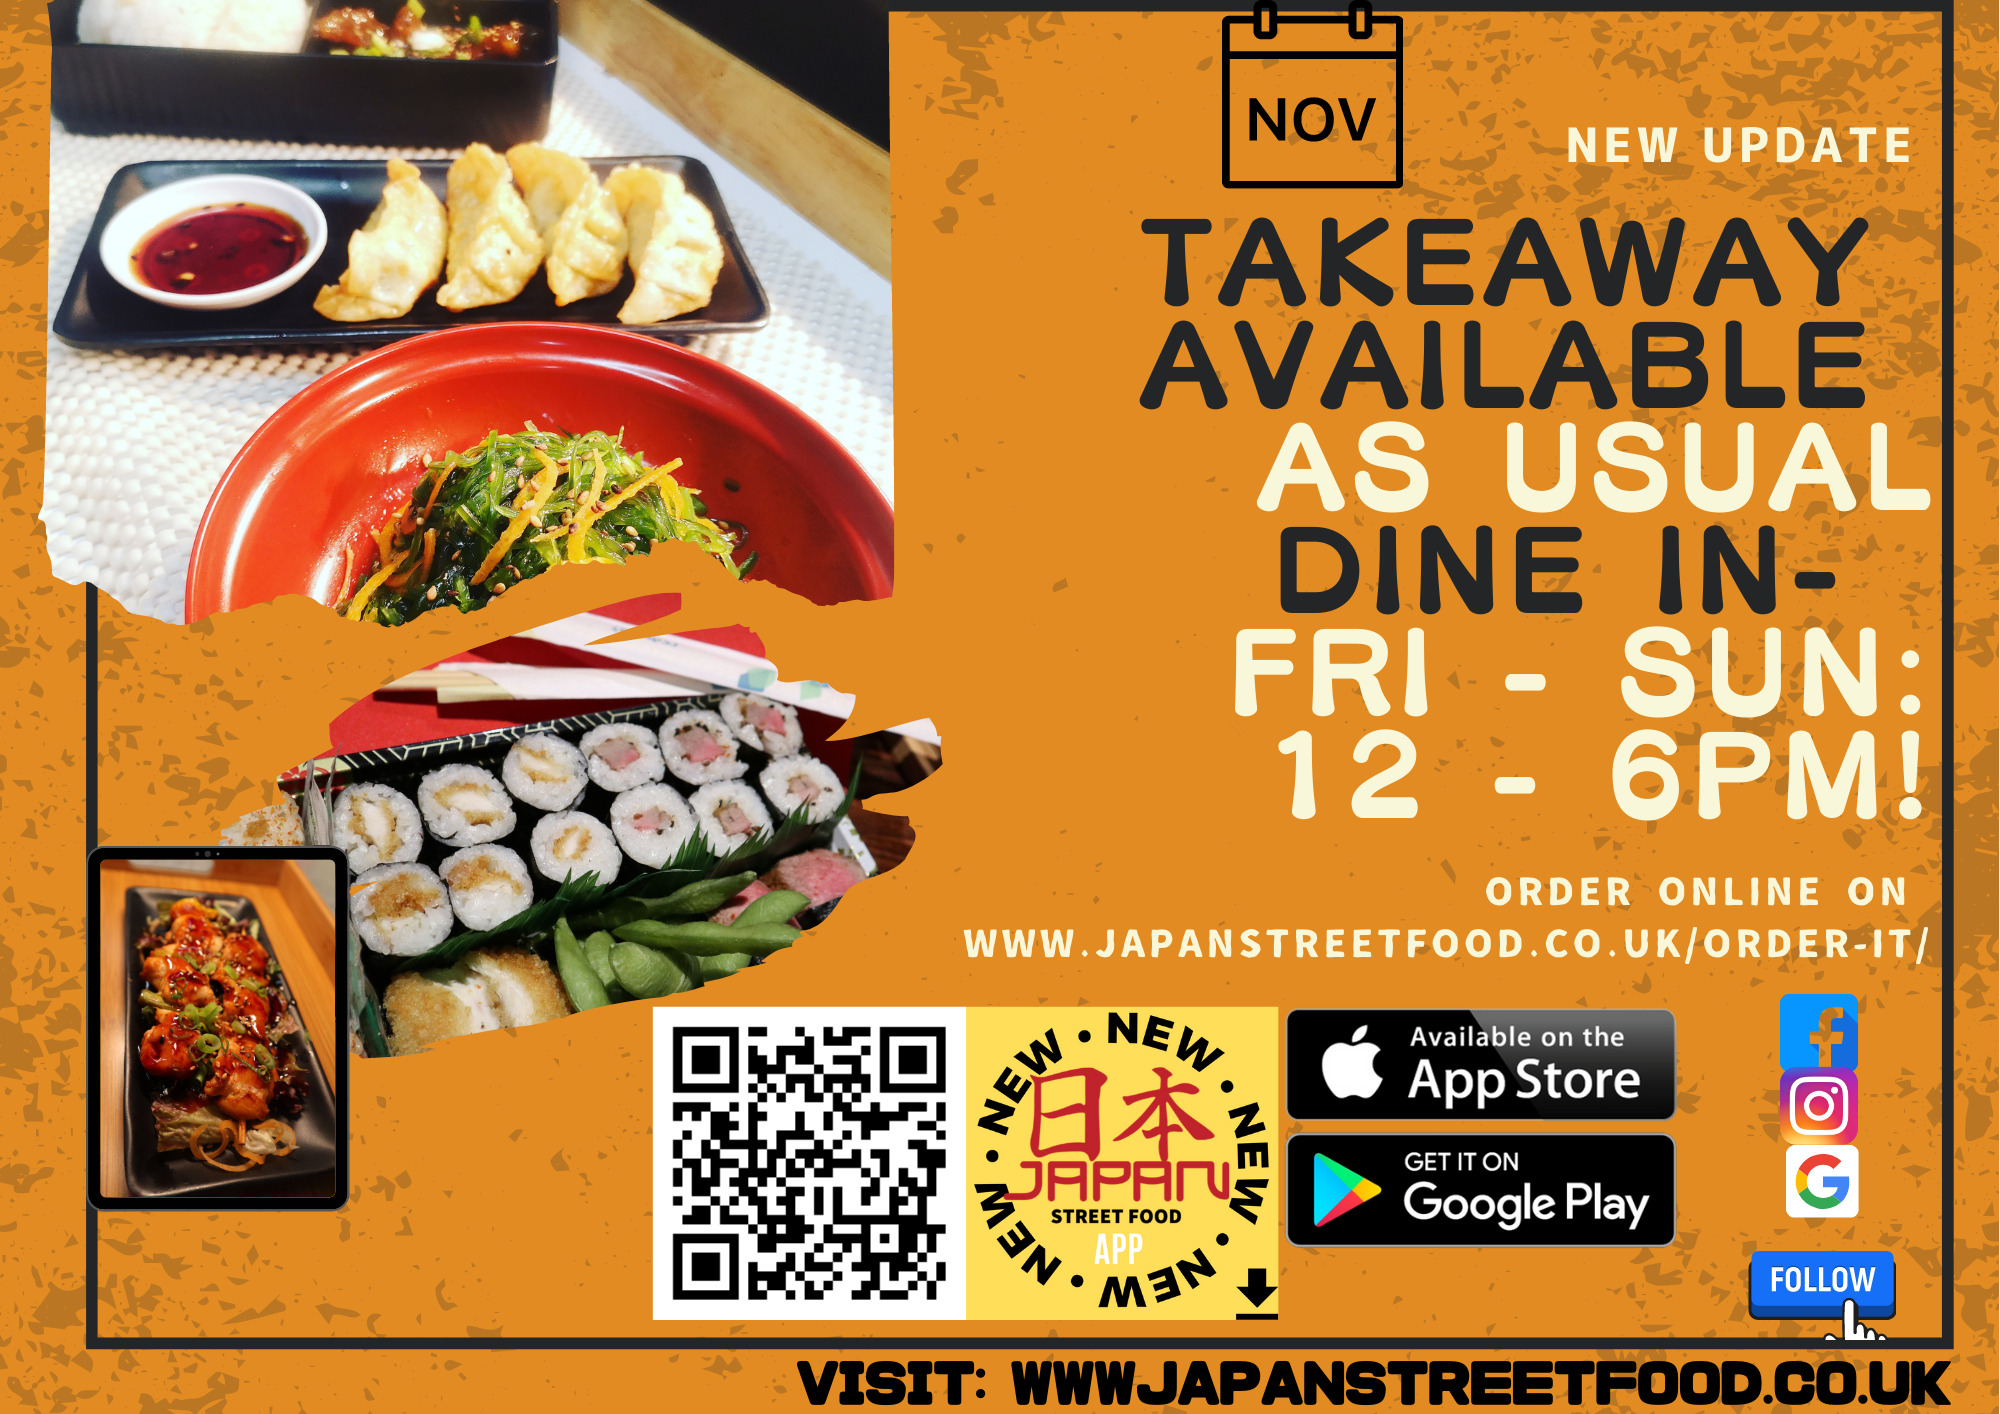 DINE IN 12 - 6PM Japan Street Food Paisley